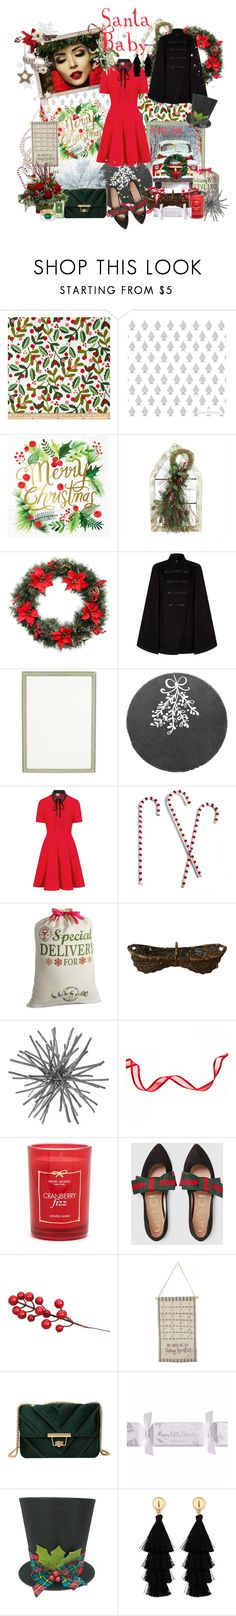 """""""A christmas kiss..."""" by forget-me-not ❤ liked on Polyvore featuring Design Design, Martha Stewart, Pierre Balmain, Haffke, Jay Import, Grandin Road, Henri Bendel, Gucci, Avenue Montaigne and Primitives By Kathy"""